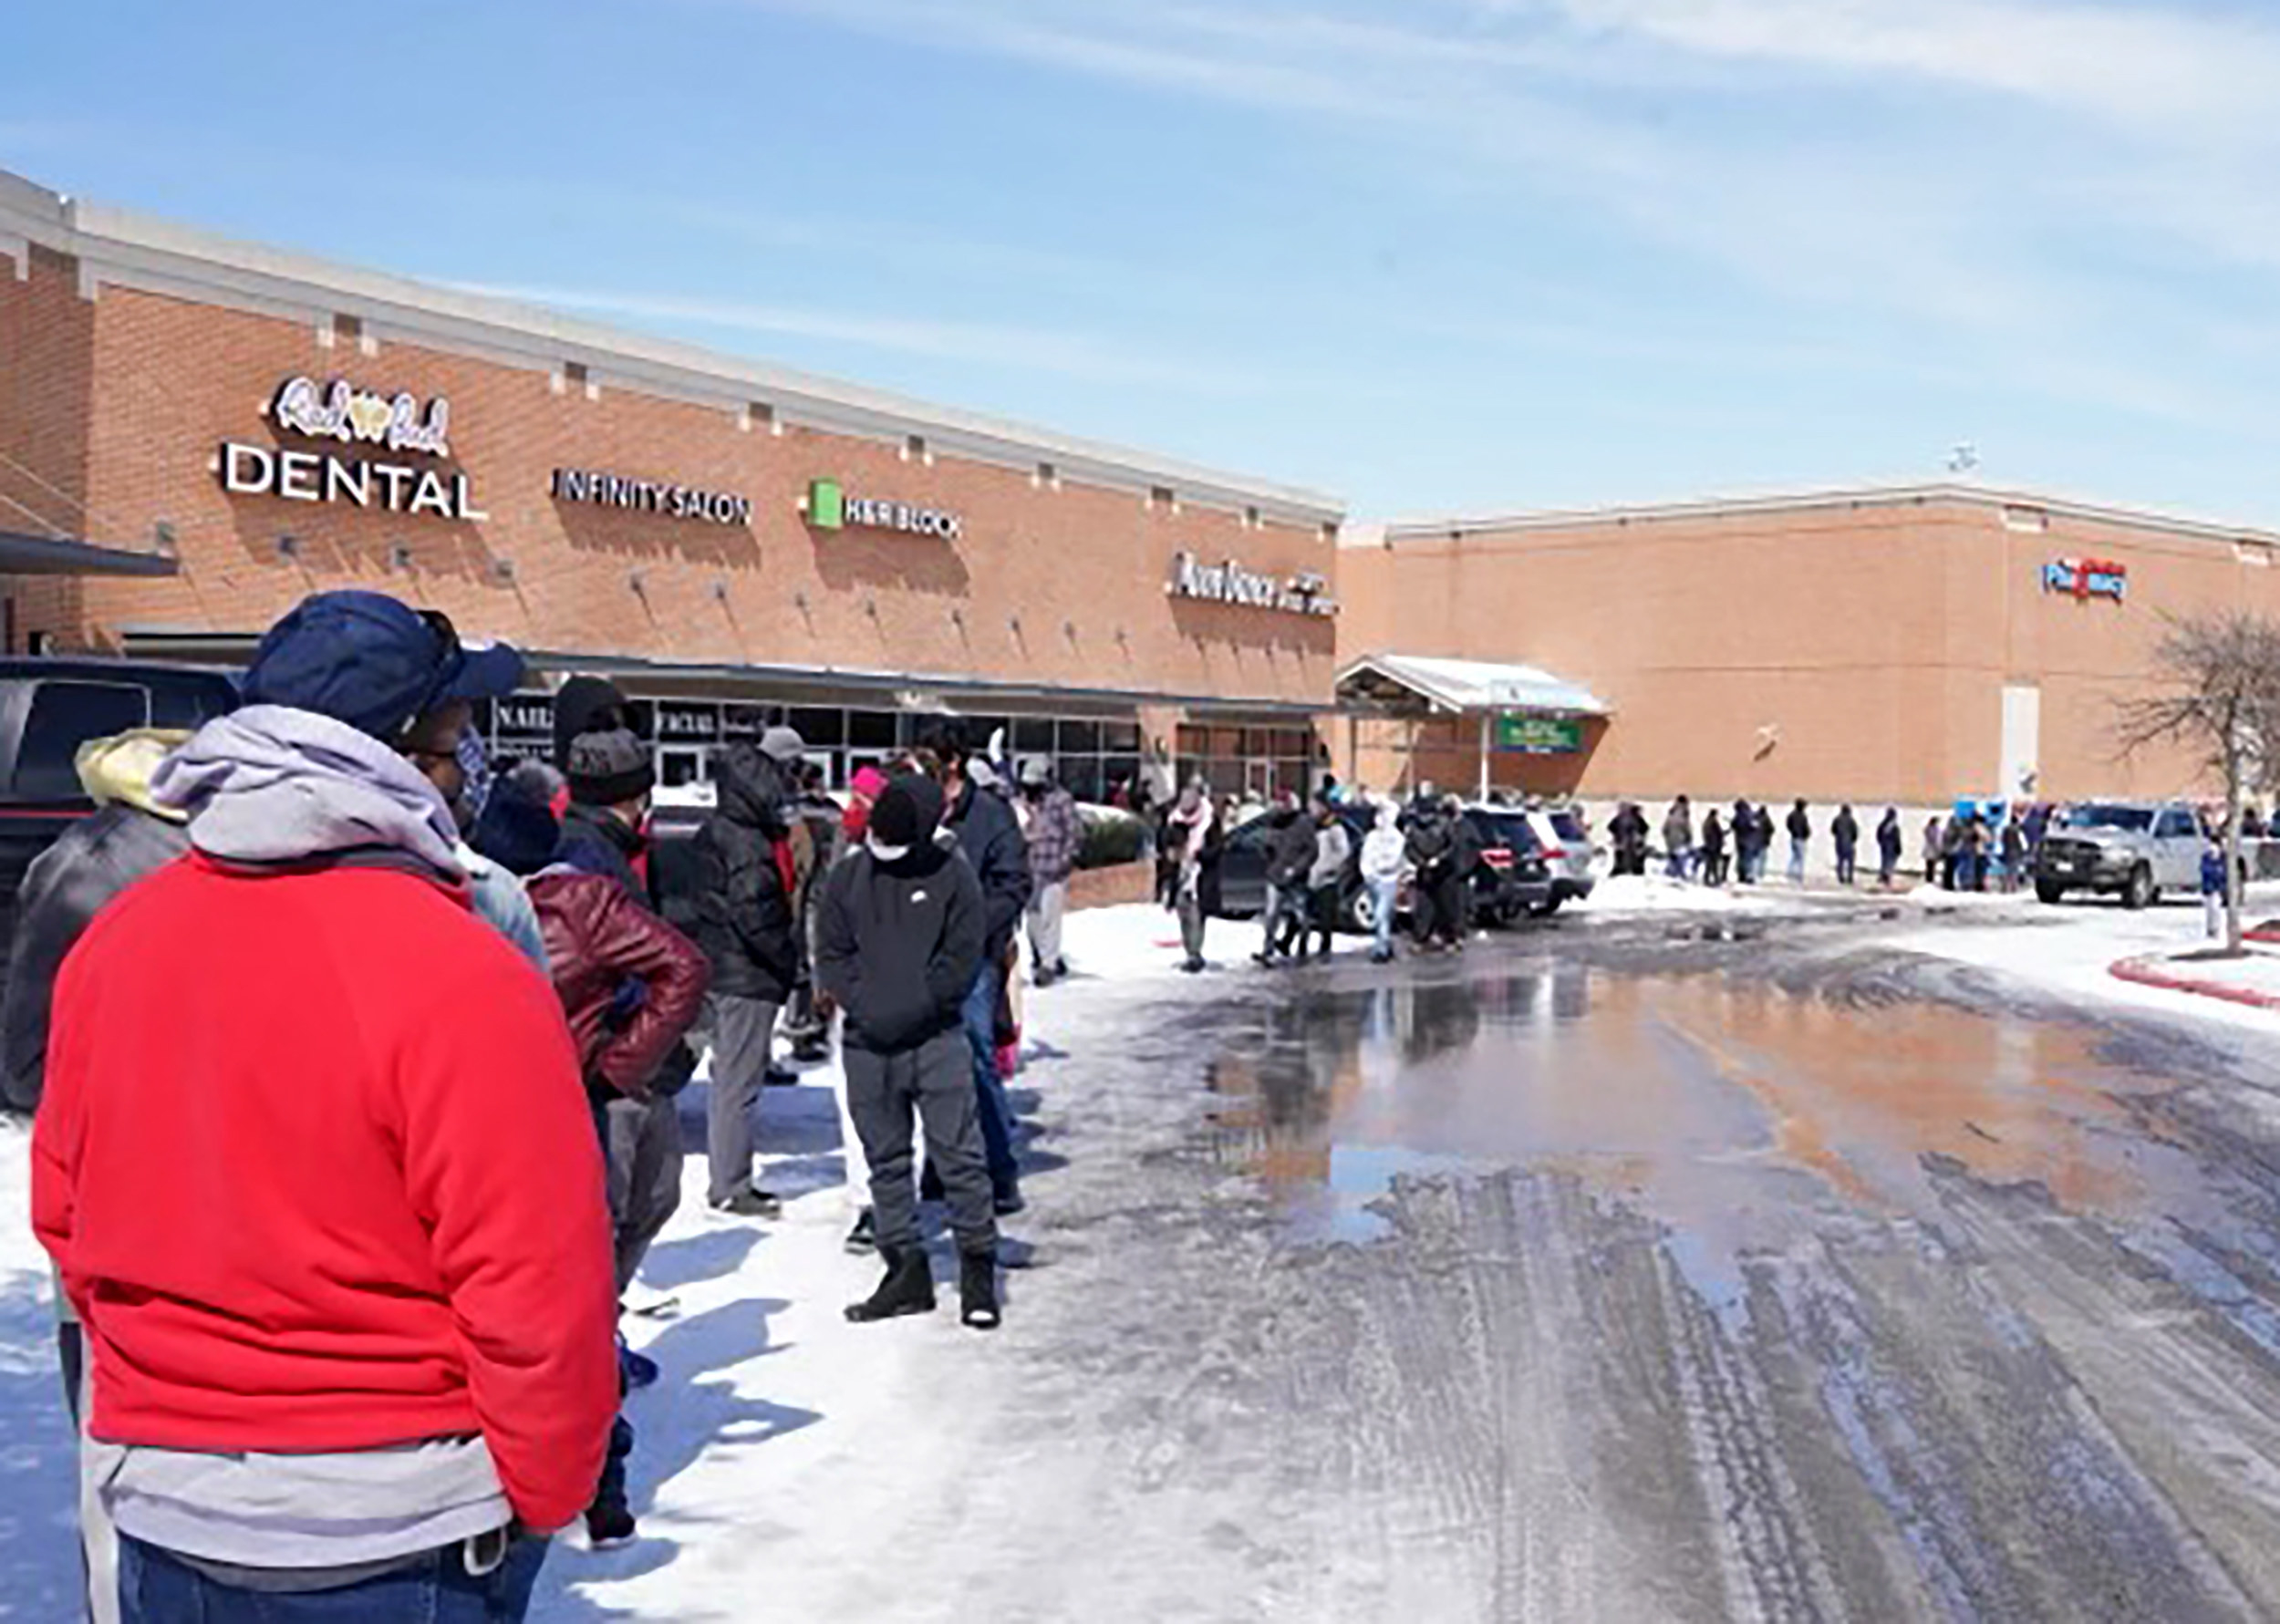 A long line of people waiting outside the supermarket